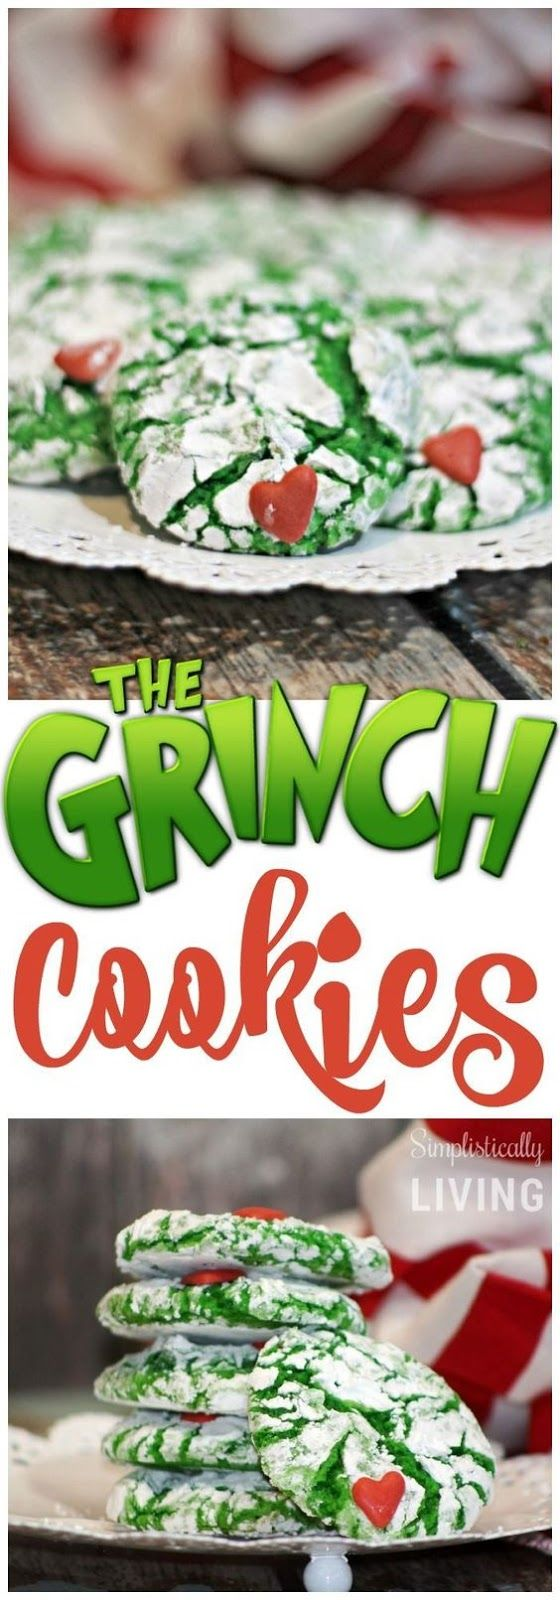 CRINKLY, CRANKY, GRINCH COOKIES #grinchcookies